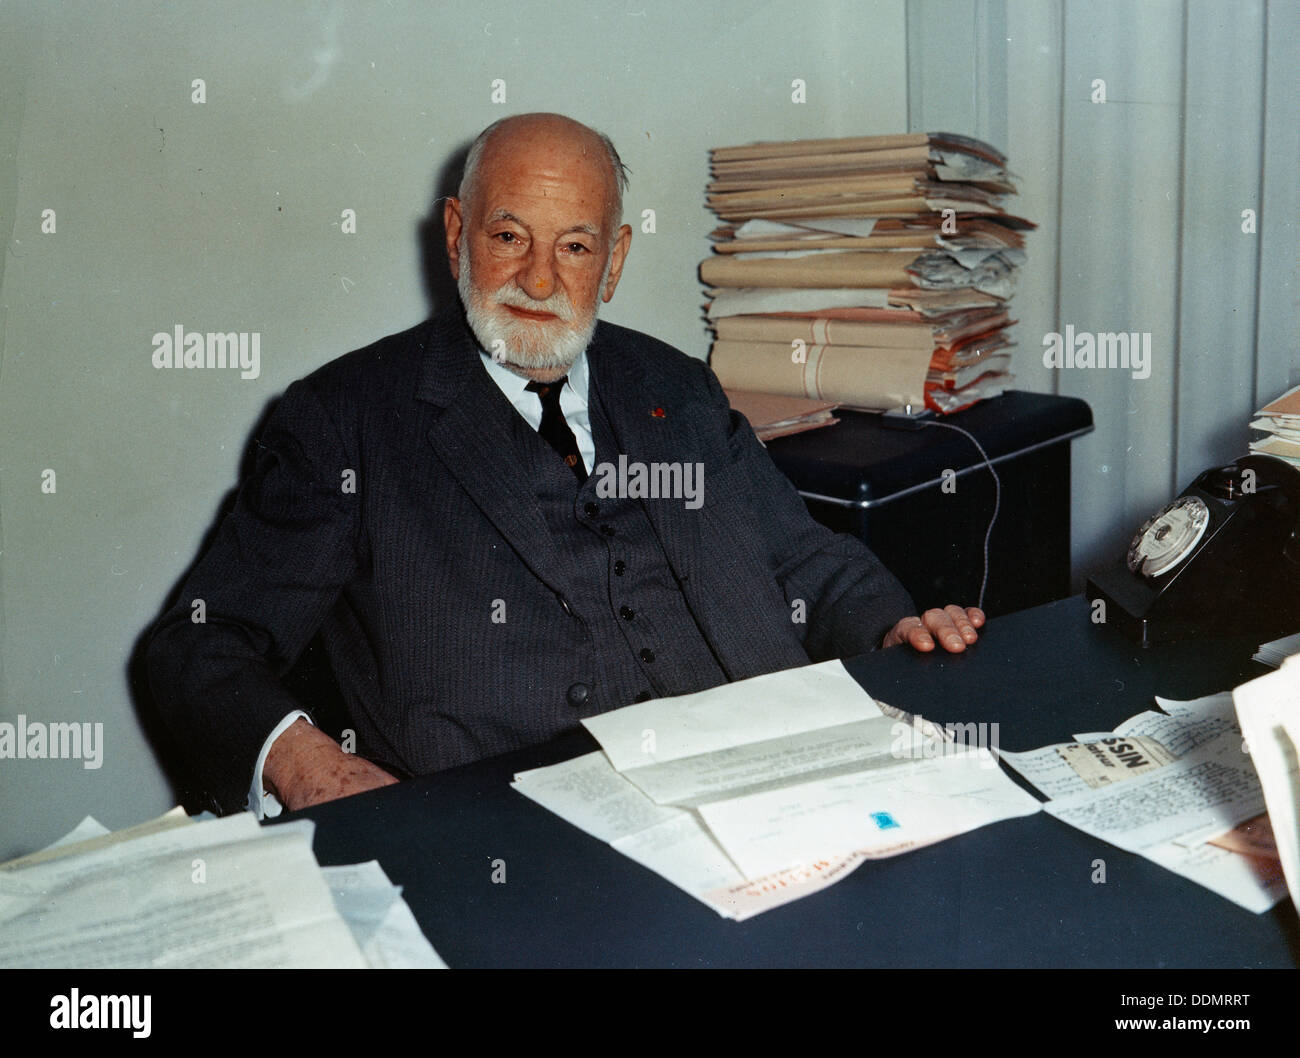 Rene Cassin (1887-1976), President of the European Court of Human Rights. - Stock Image